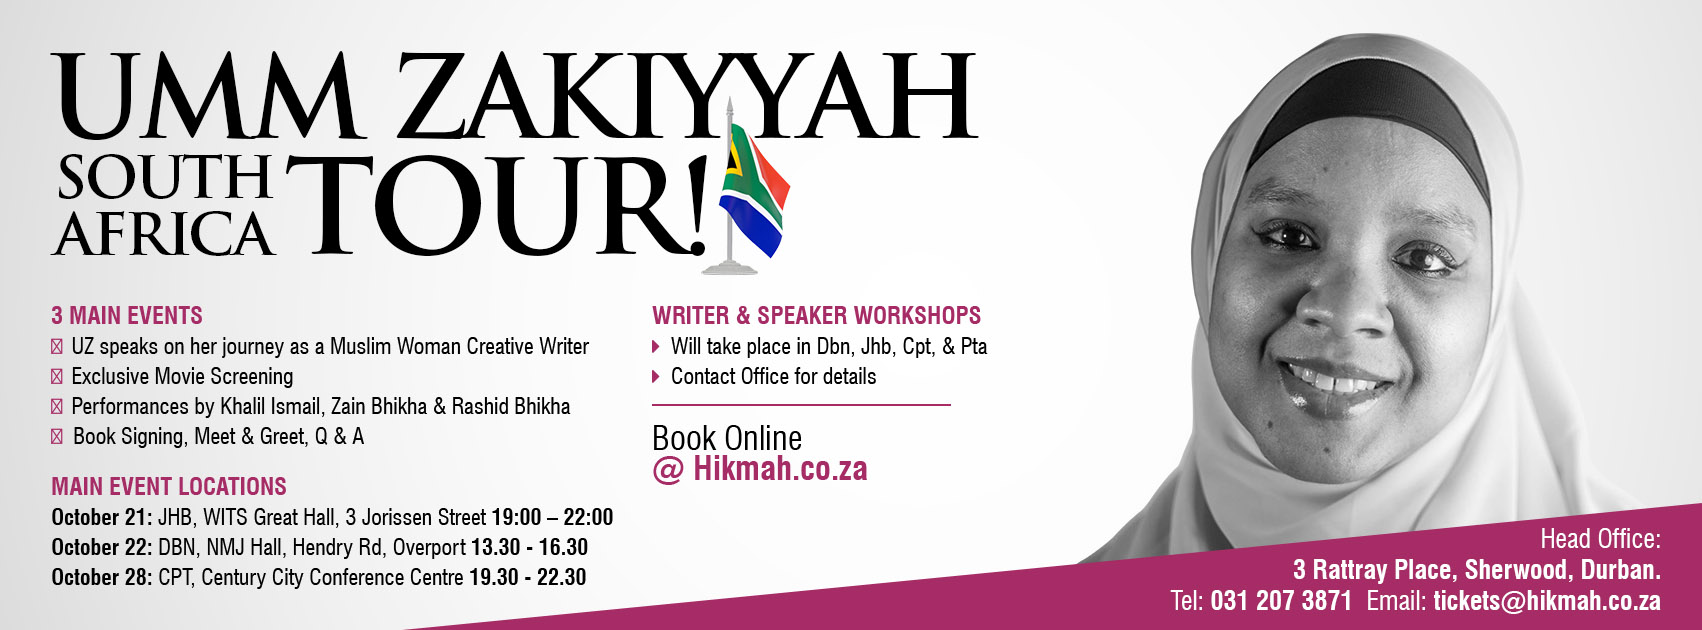 Umm Zakiyyah Tour South Africa